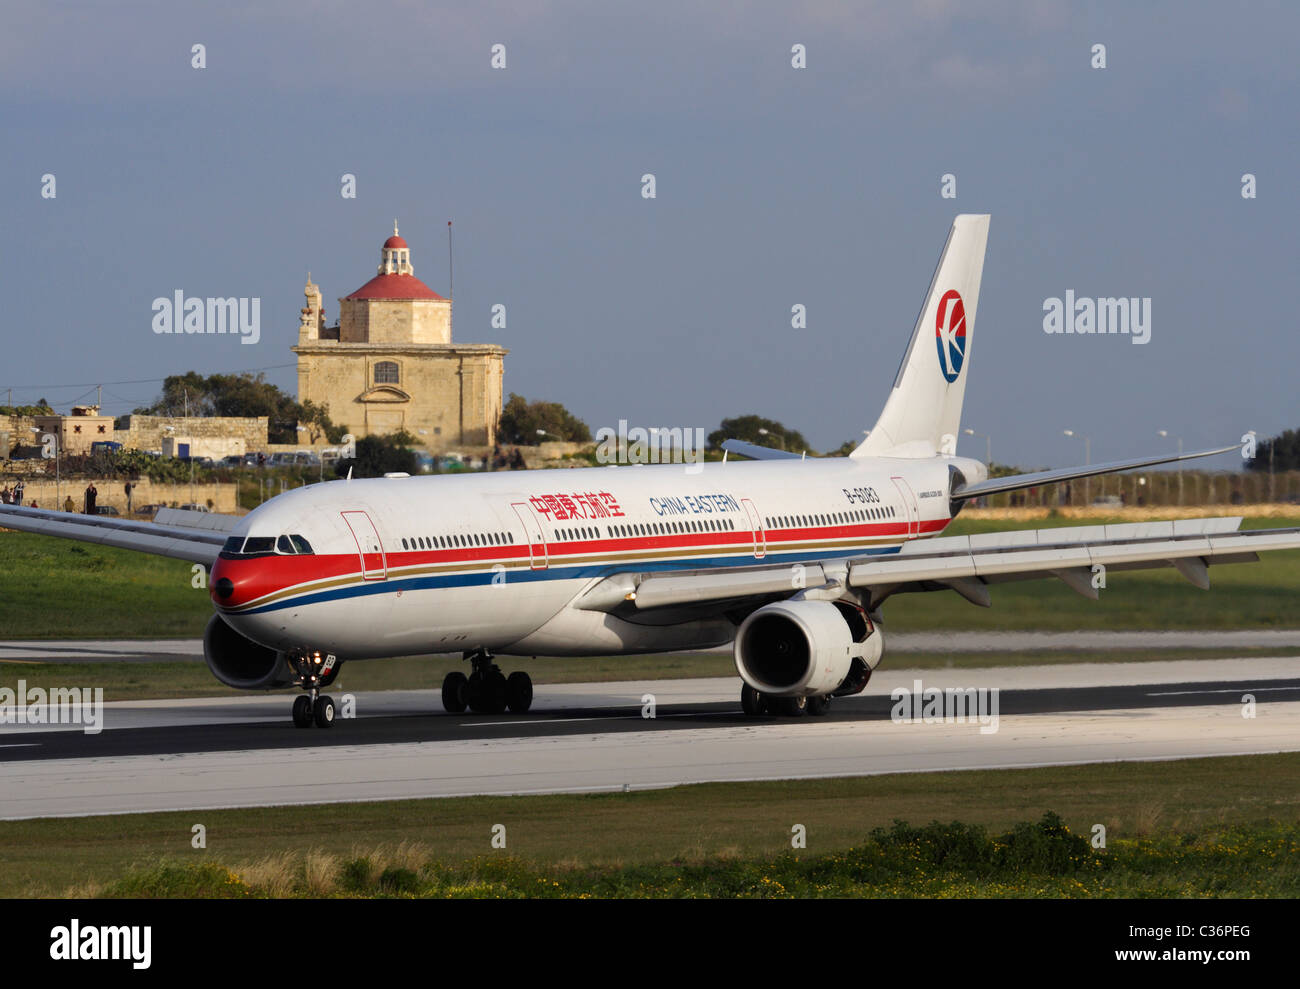 China Eastern Airlines Airbus A330-300 arriving in Malta to repatriate Chinese evacuees from Libya, 27 February - Stock Image